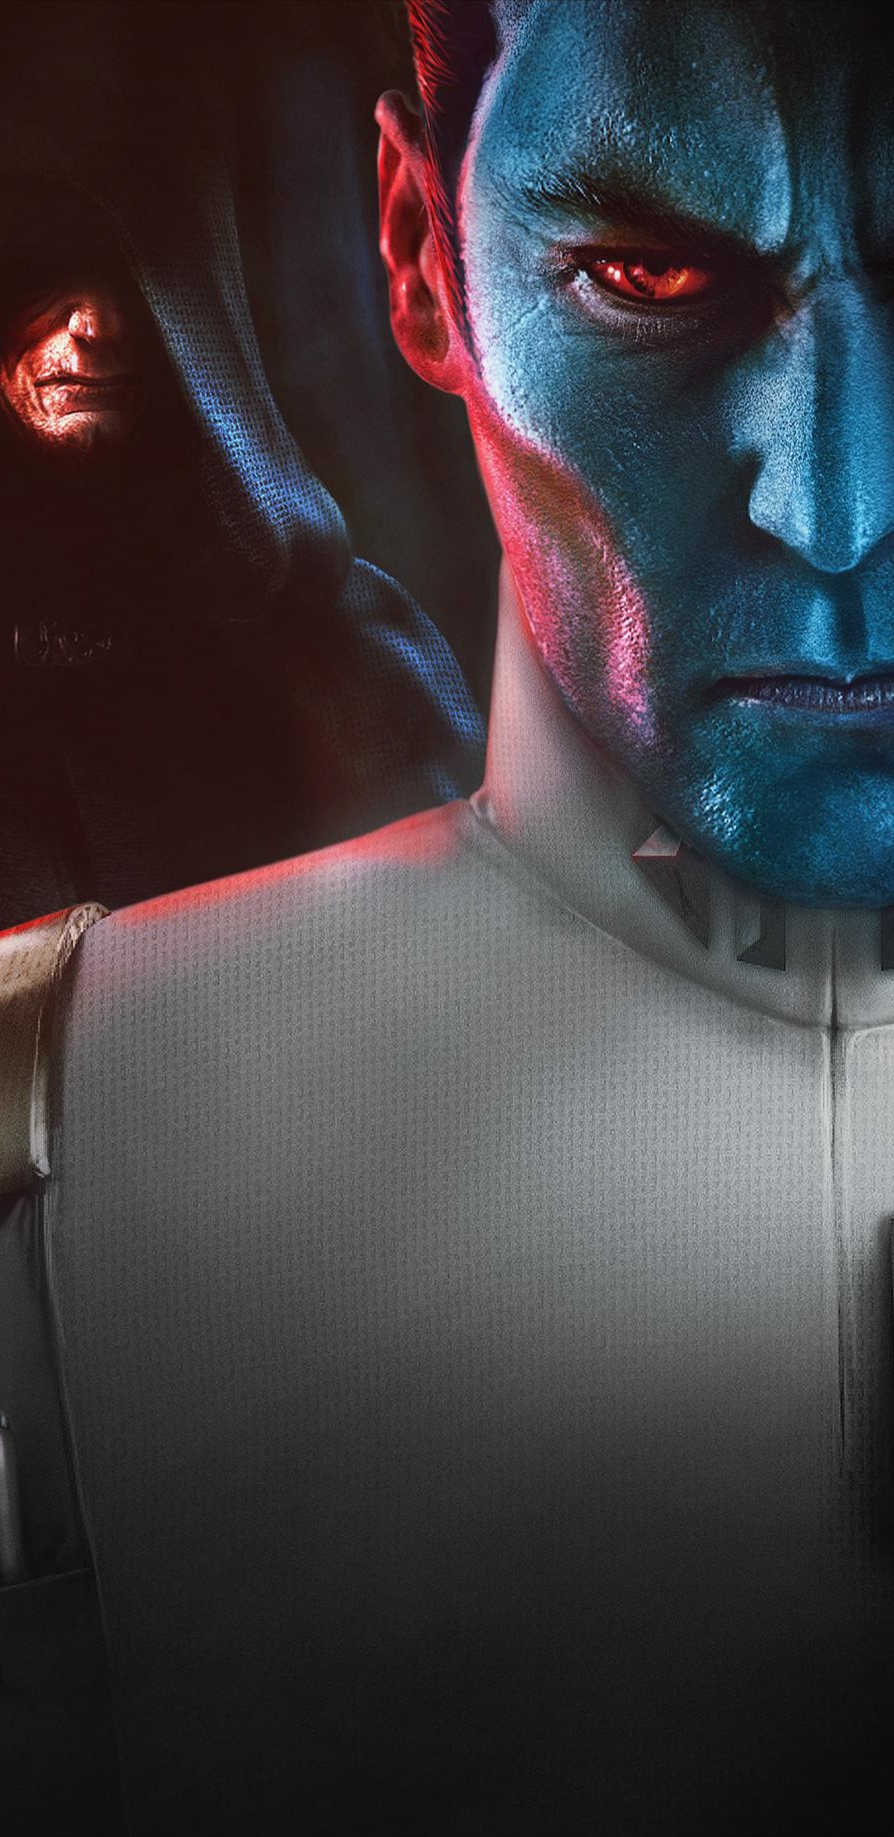 Star Wars Thrawn Audiobook 894x1837 Wallpaper Teahub Io